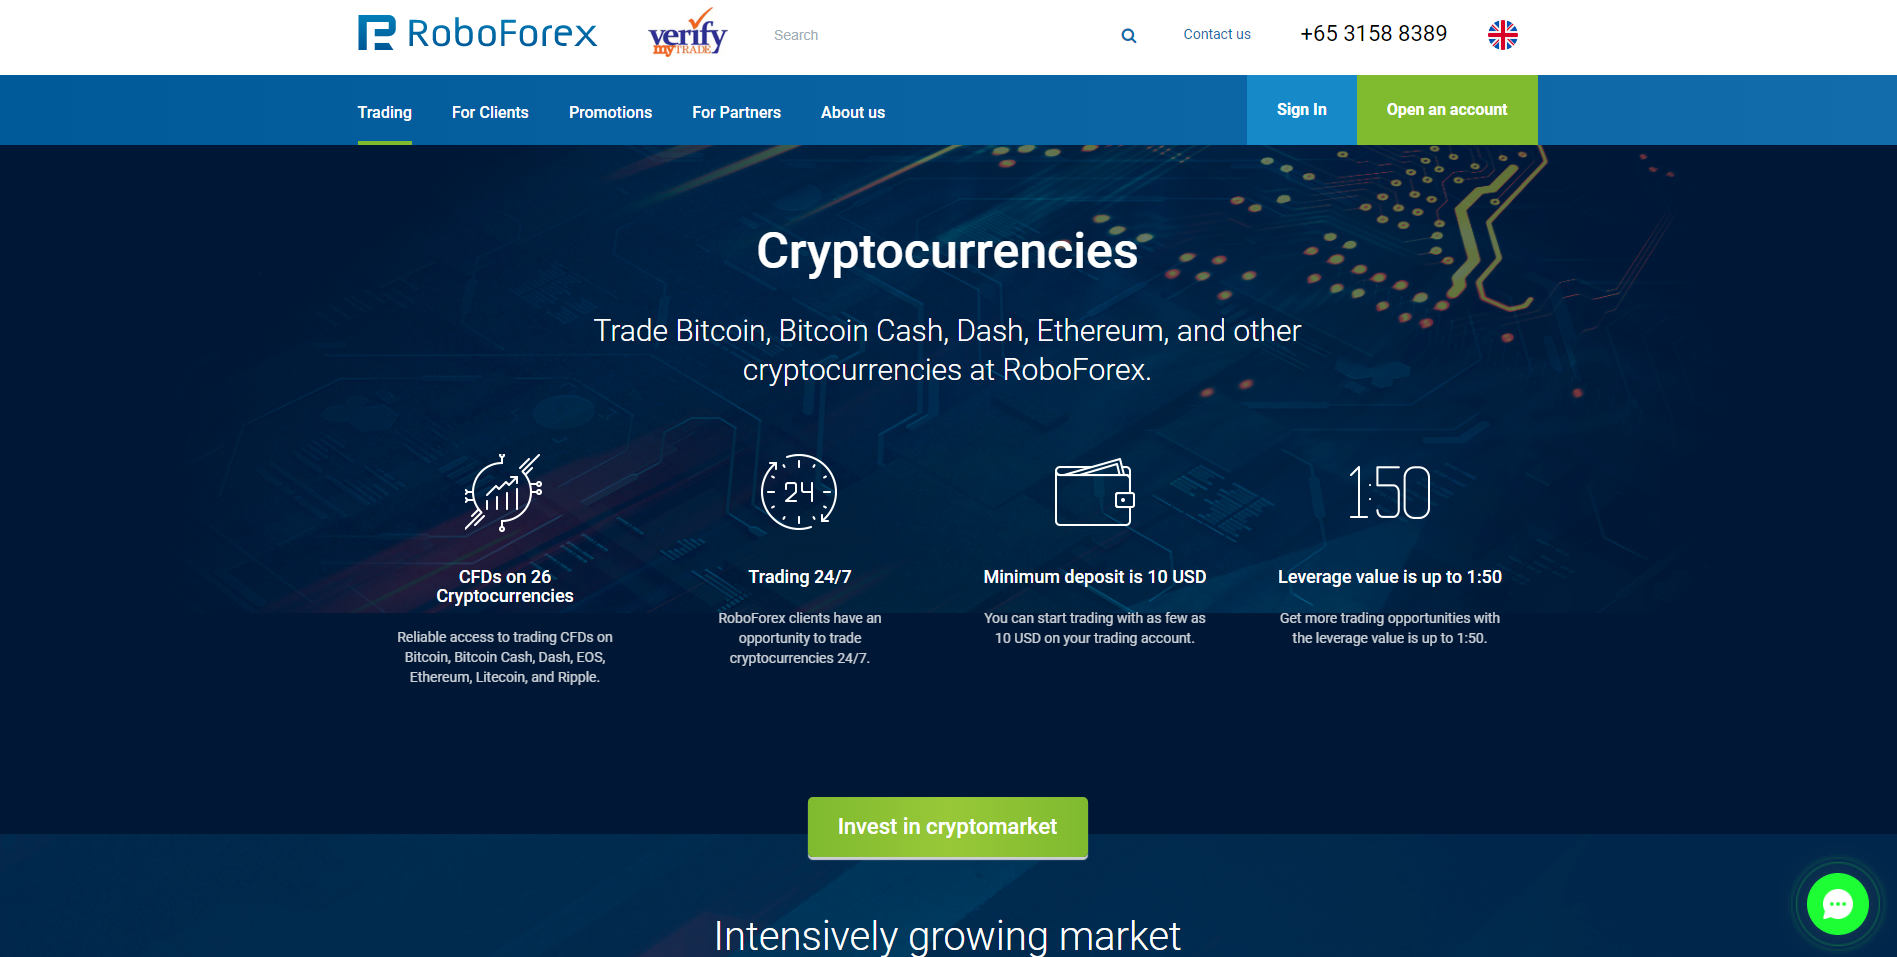 RoboForex Cryptocurrency Platform and Trading Software